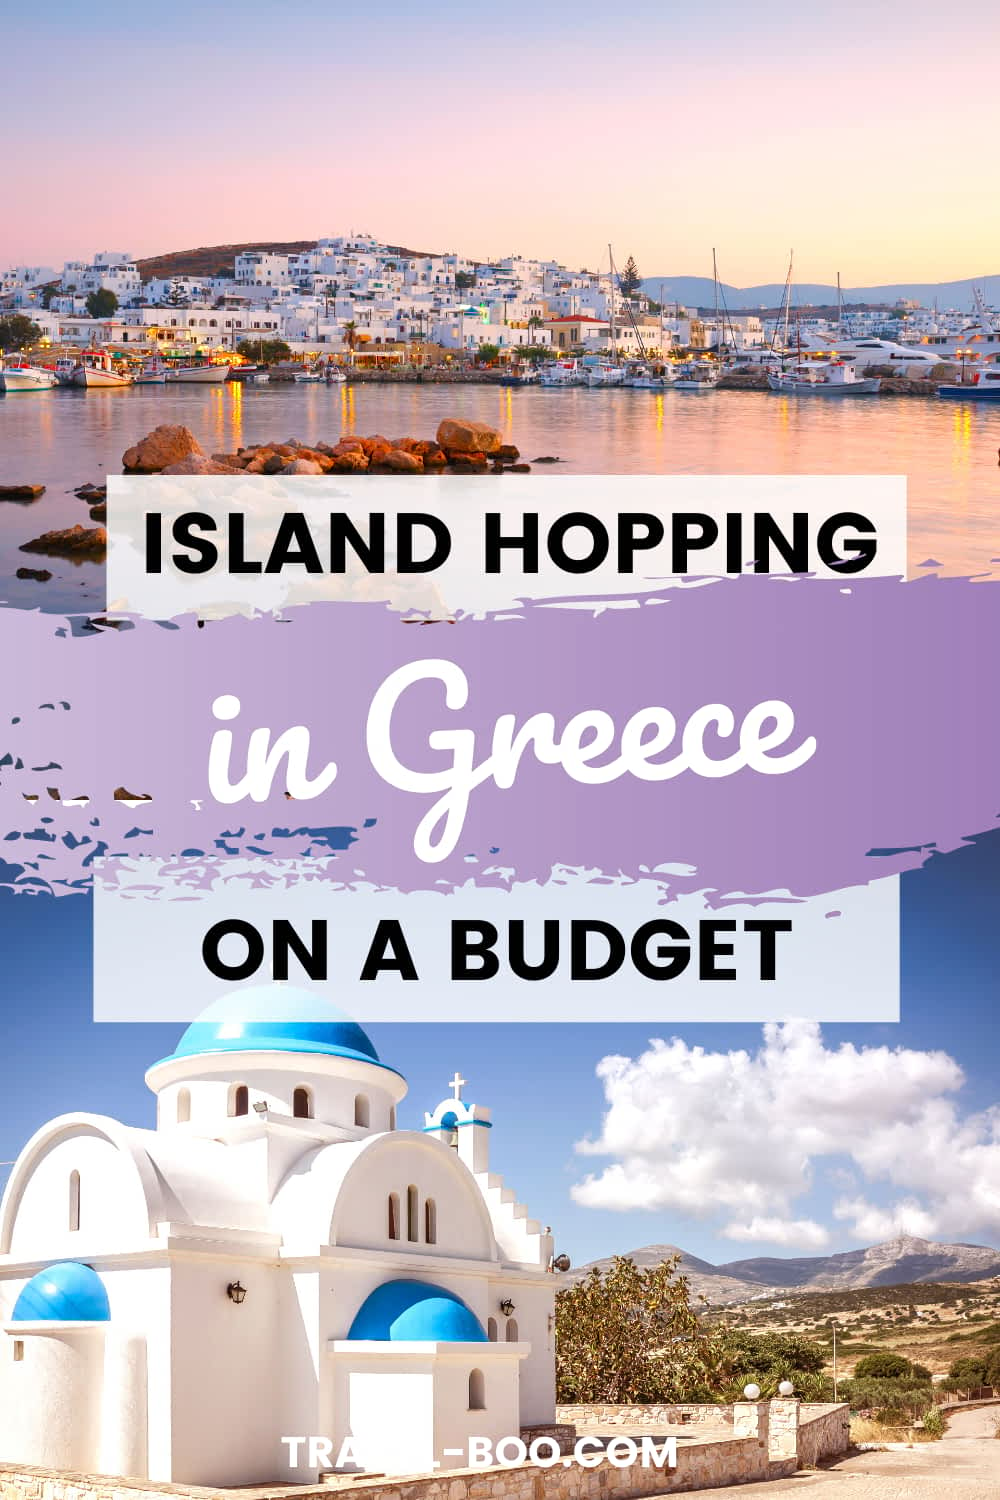 Want to plan the perfect Greek Island hopping holiday? Read our guide on how to do so on a budget! Greece Travel, Greece Travel Guide, Greece Travel Islands, Greece Travel Tips, Mykonos Travel, Santorini Travel, Greece Vacation. #greecetravel #greecetravelislands #greecetraveltips